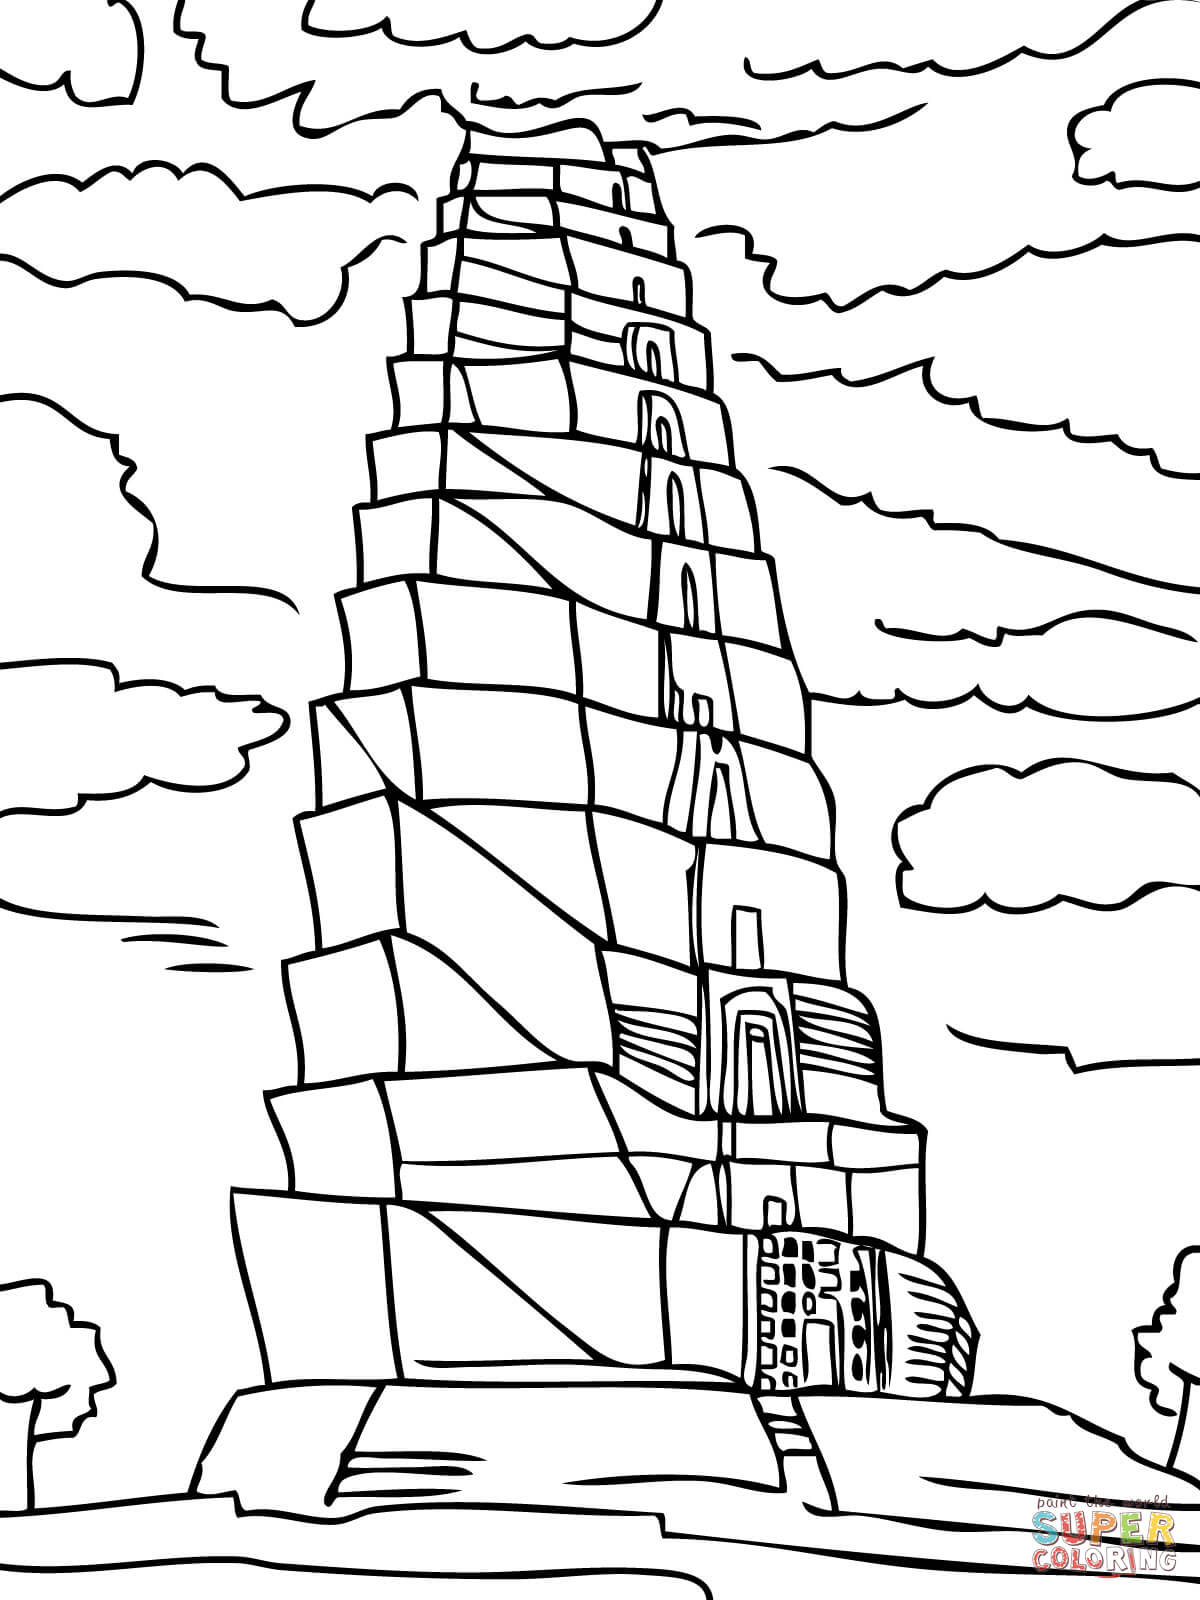 tower of babel coloring sheet tower of babel bible coloring page thecatholickidcom in of tower babel coloring sheet